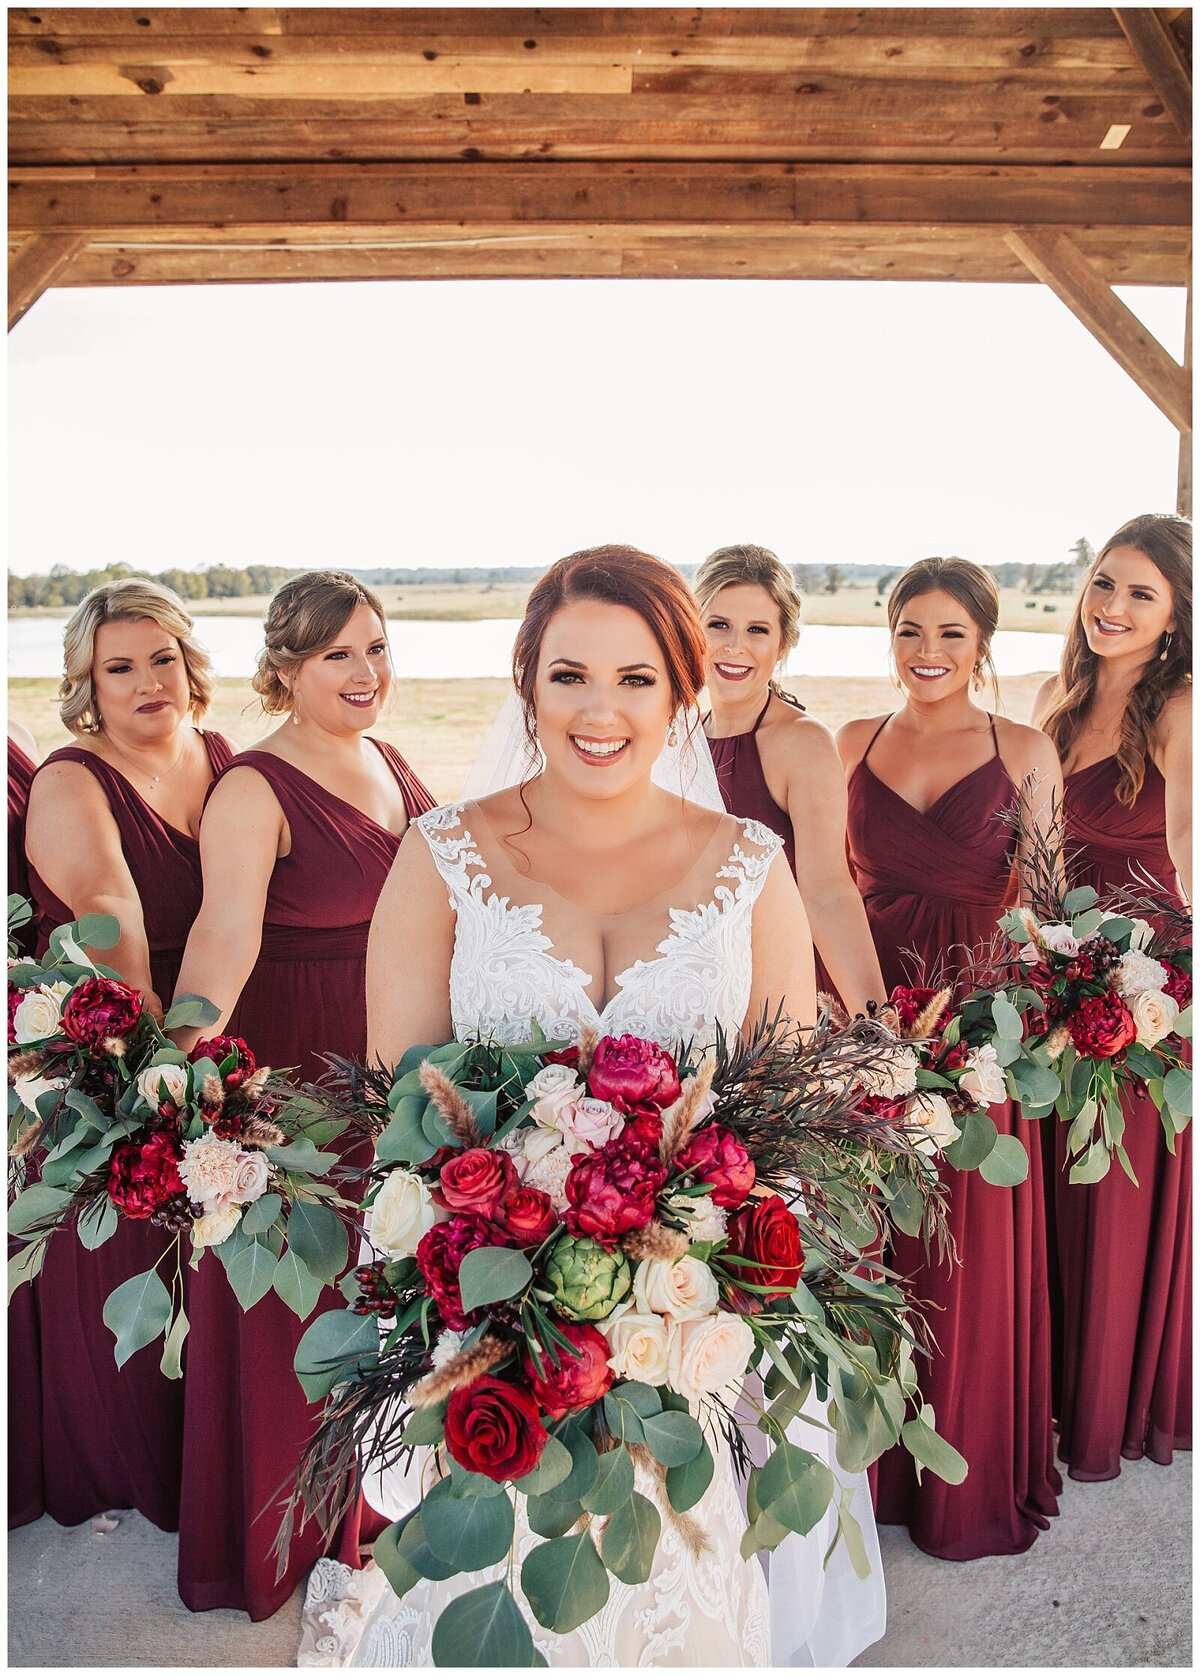 Rustic Burgundy and Blush Indoor Outdoor Wedding at Emery's Buffalo Creek - Houston Wedding Venue_0675